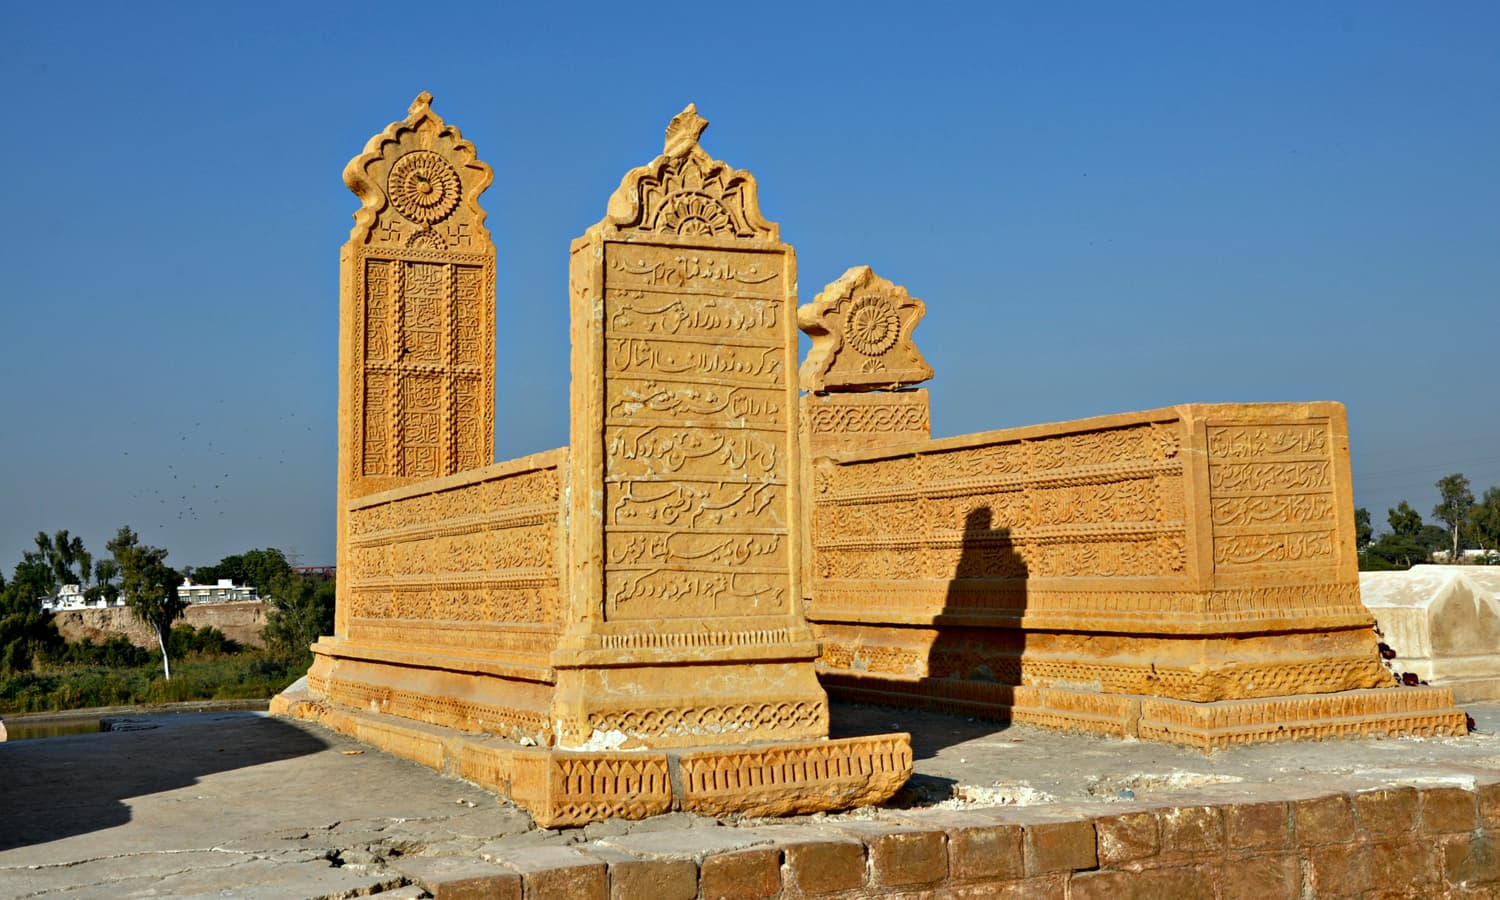 Abode of Seven - Carvings and calligraphy on the tombs